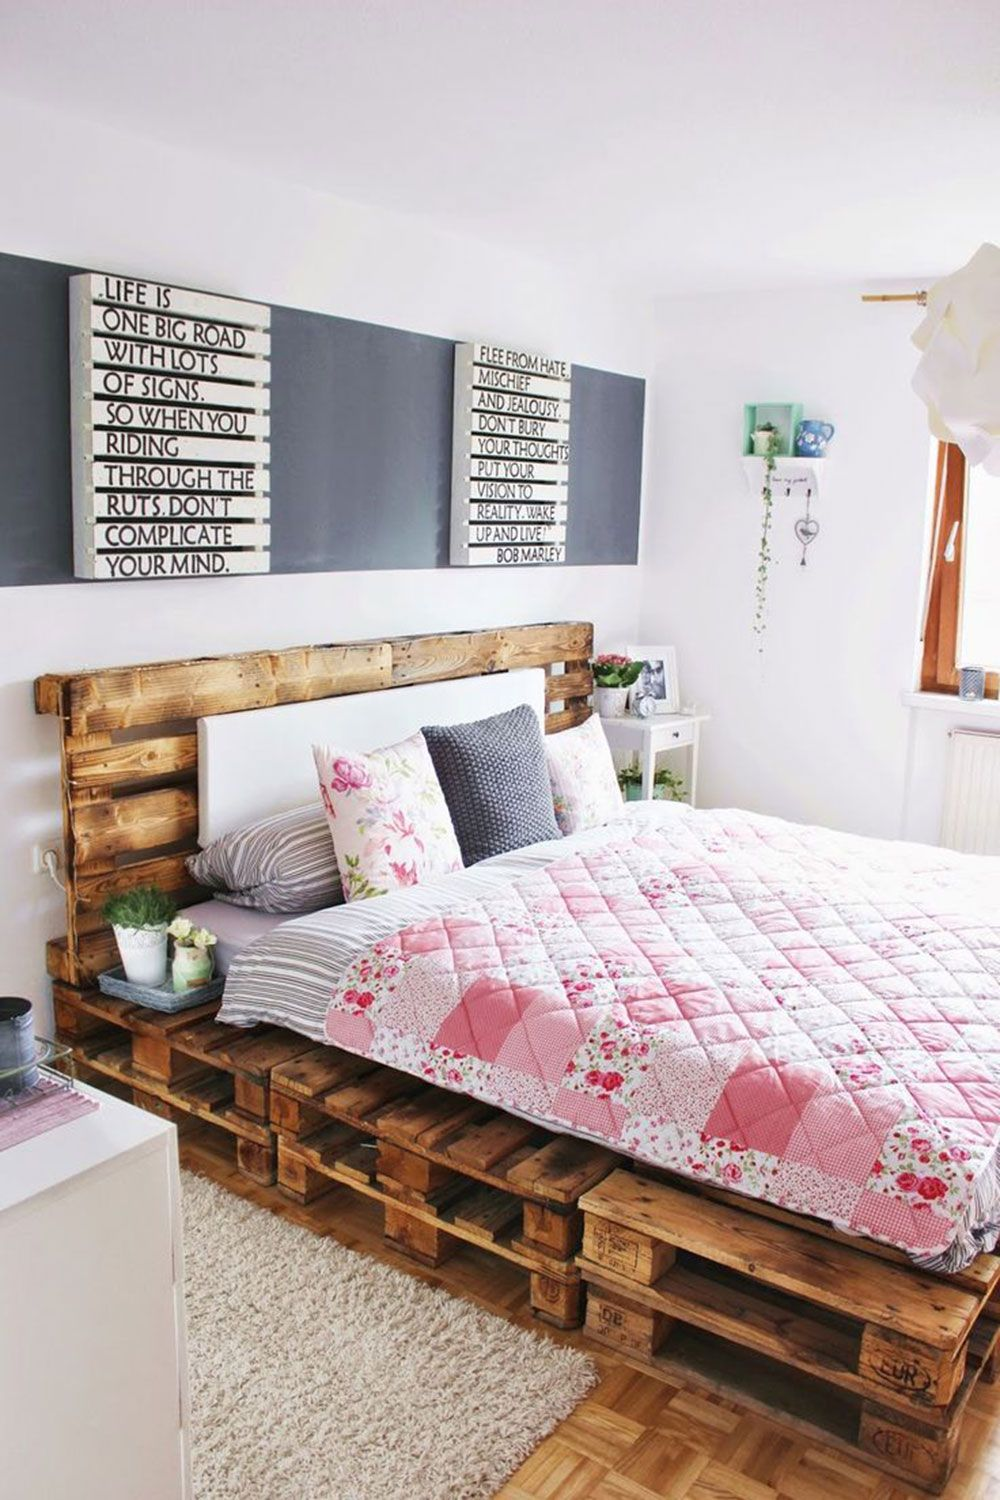 Great Pallet Bed Ideas To Lighten Your Space | Studio Inspirations ...